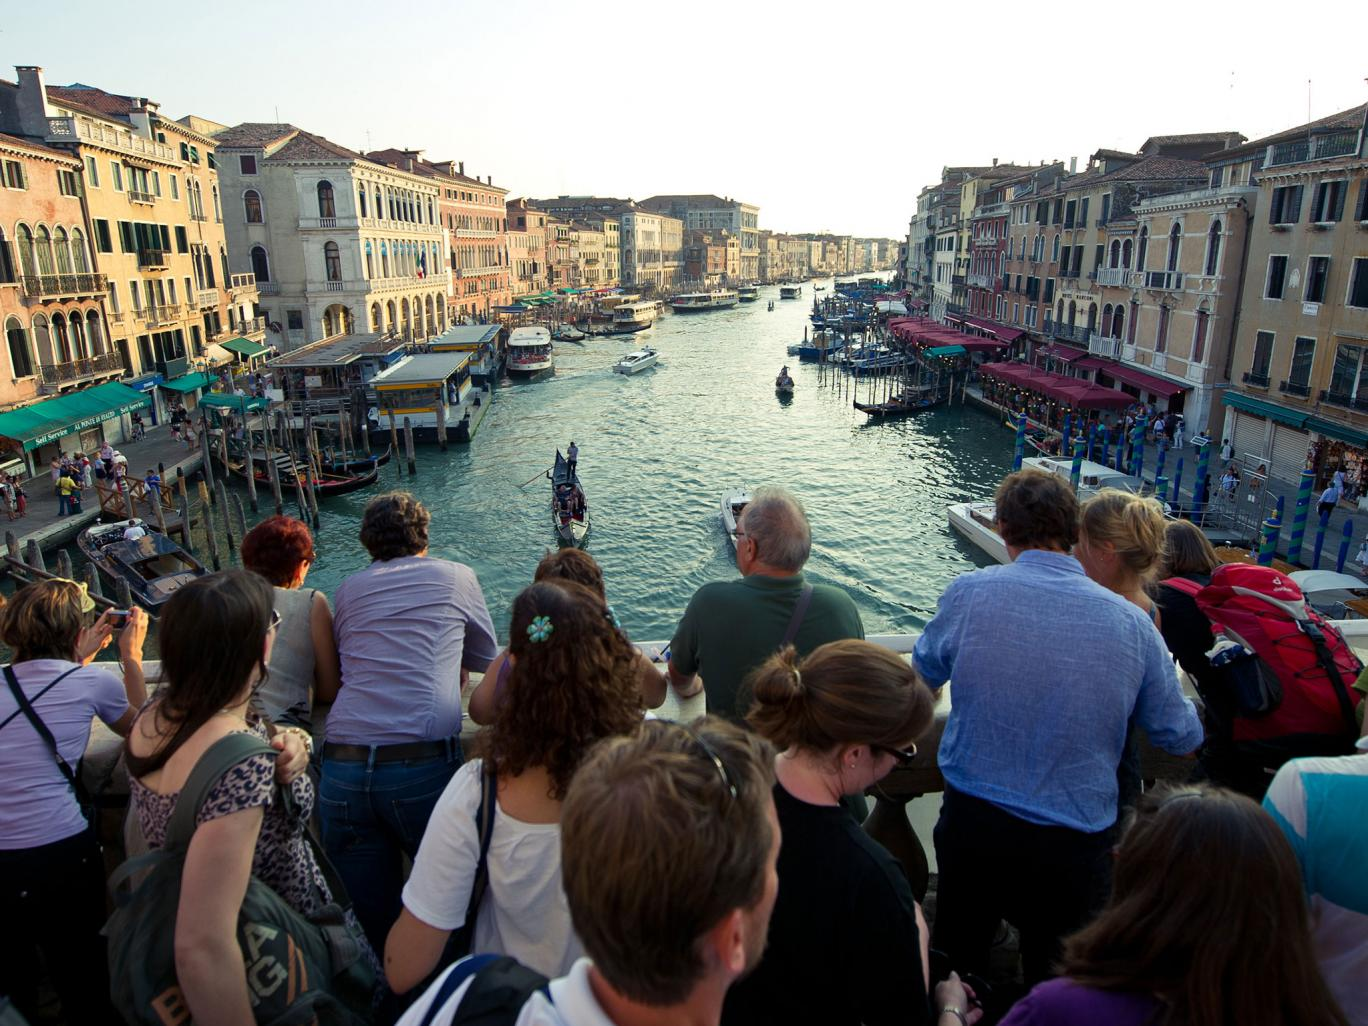 A bridge too far: increasing numbers of day-trippers are crowding Venice's attractions such as the Rialto Bridge